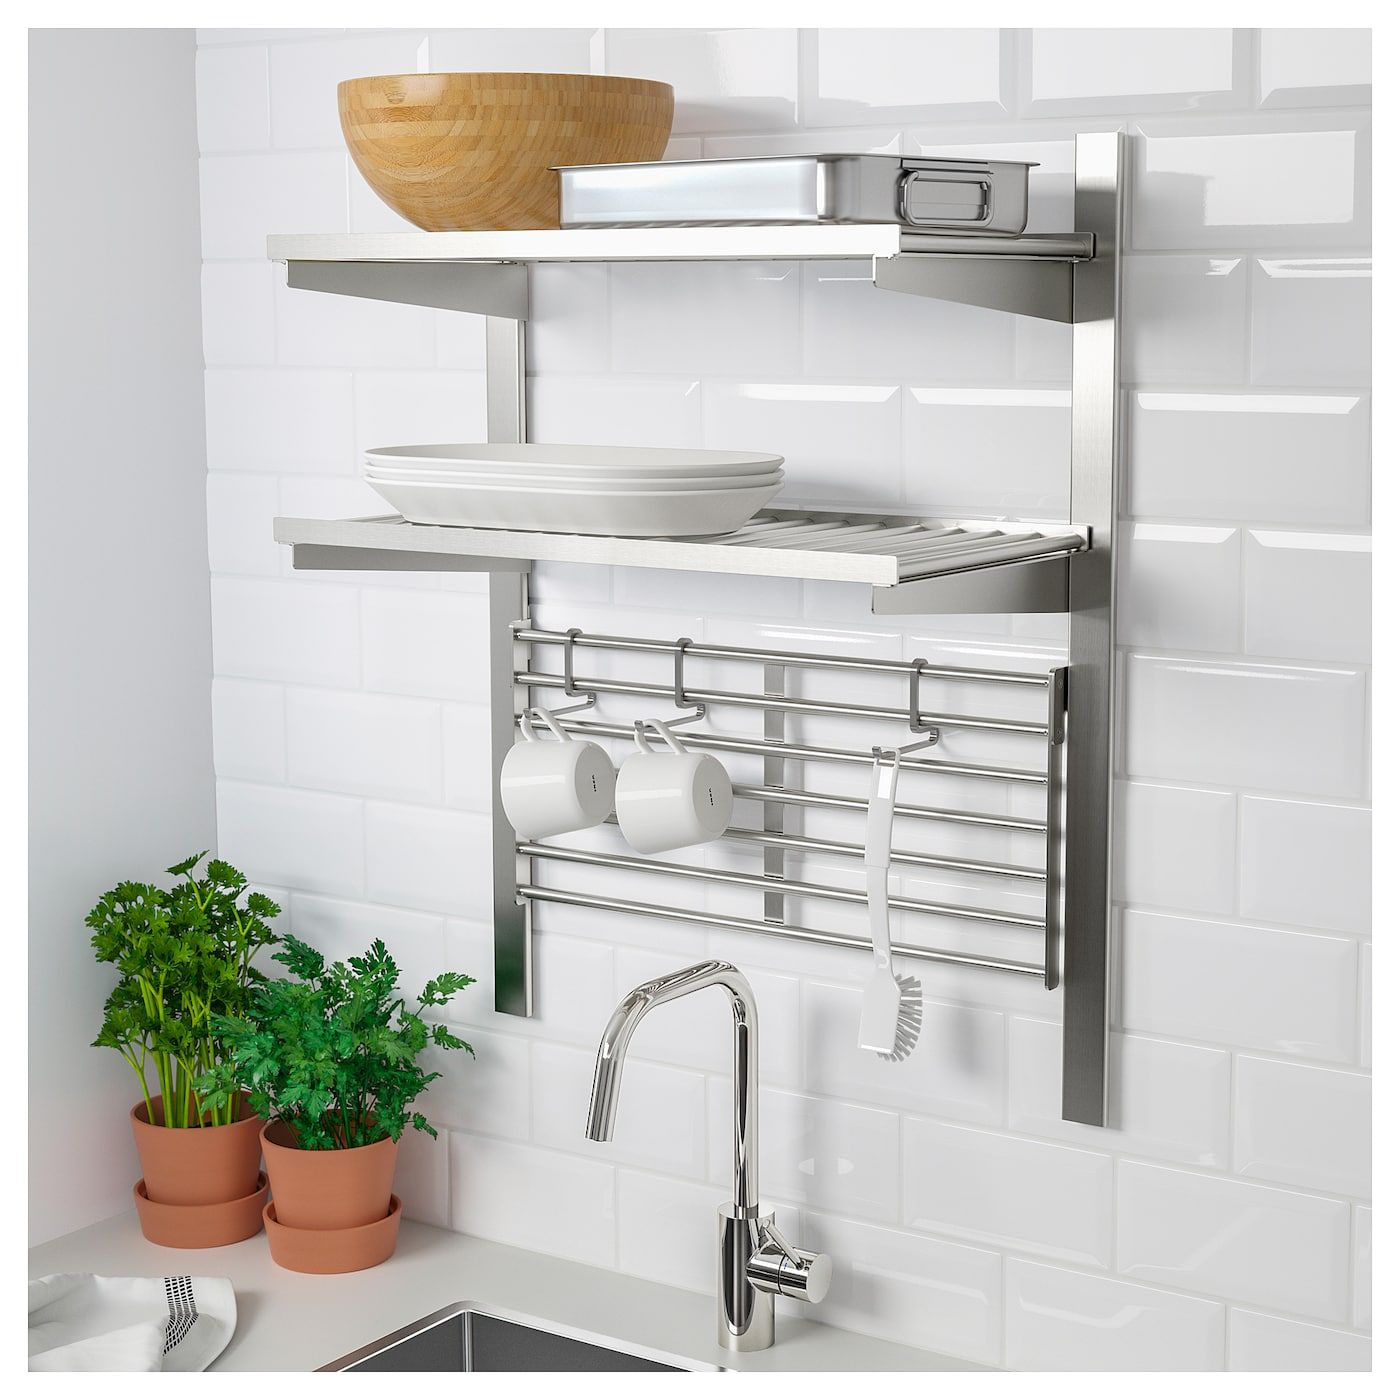 Wandaufbewahrung Küche Edelstahl Kungsfors Suspension Rail With Shelf/wll Grid - Stainless